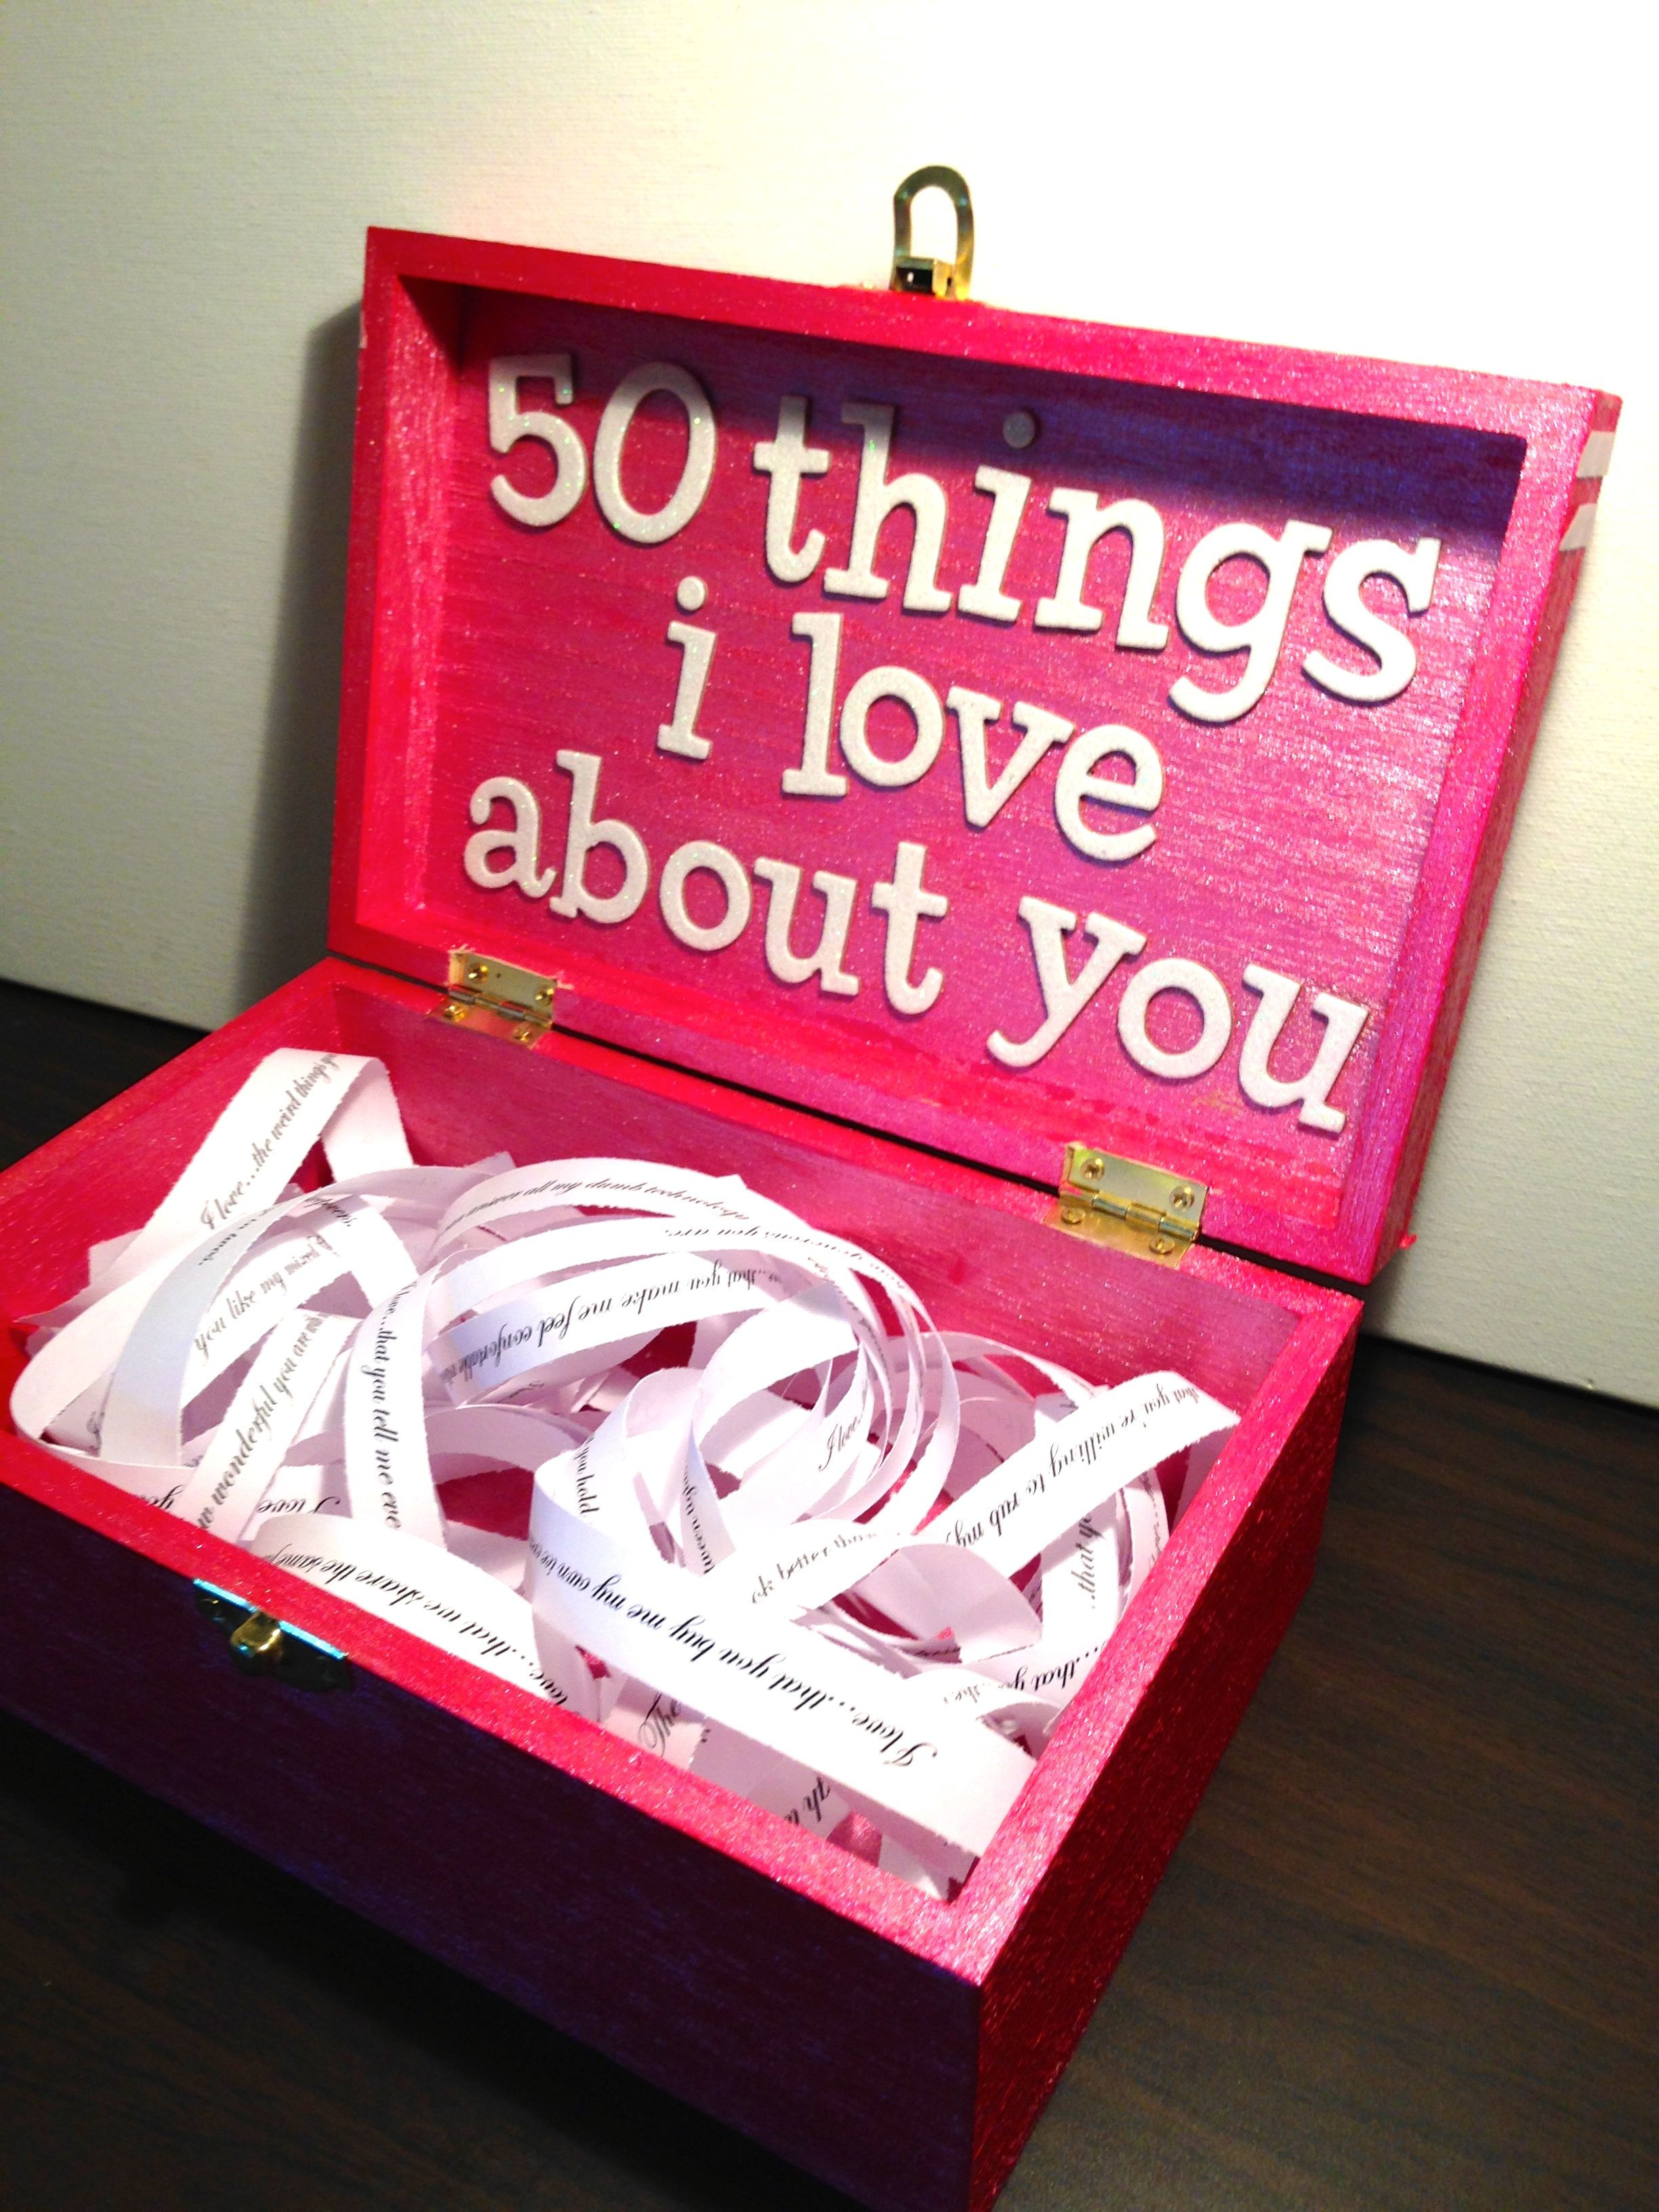 Best ideas about Gift Ideas For Your Girlfriend . Save or Pin Boyfriend Girlfriend t ideas for birthday valentine Now.